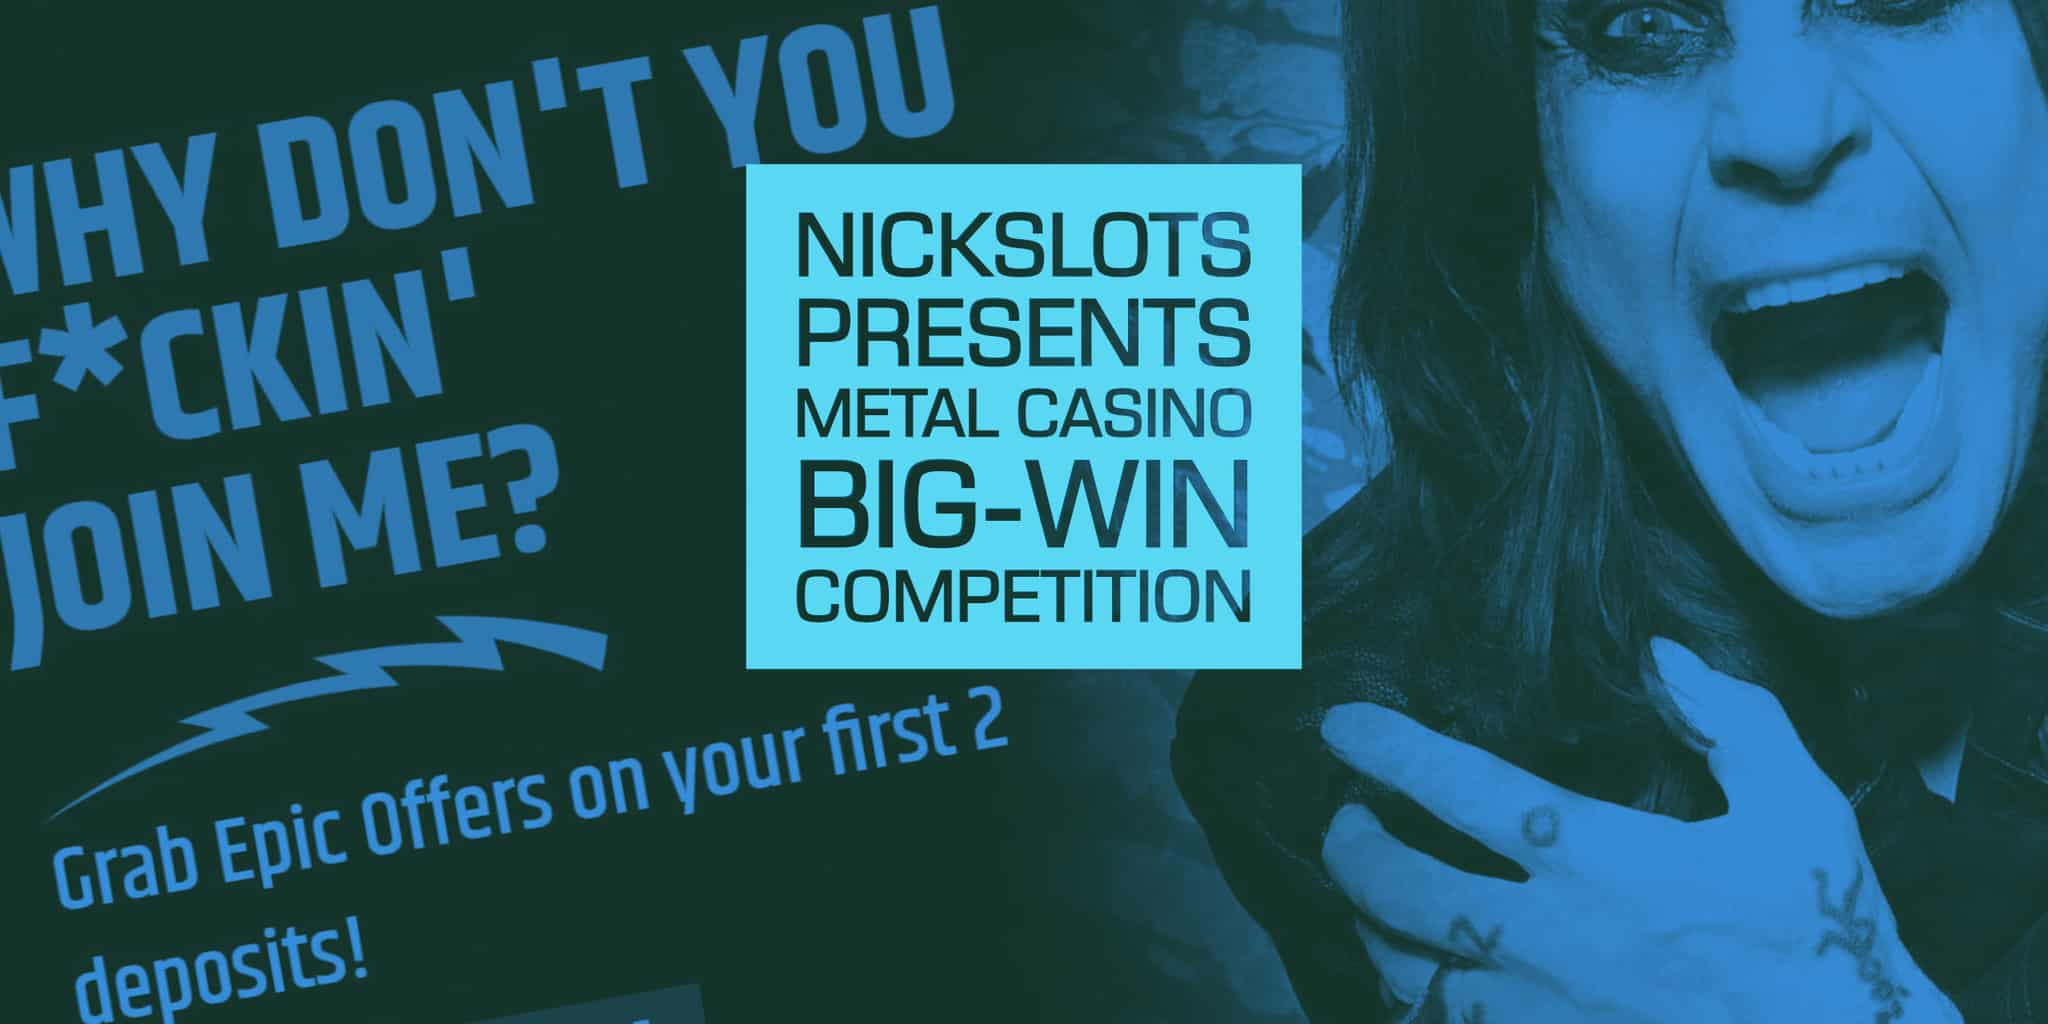 Nickslots presents a massive big win promotion with Metal Casino